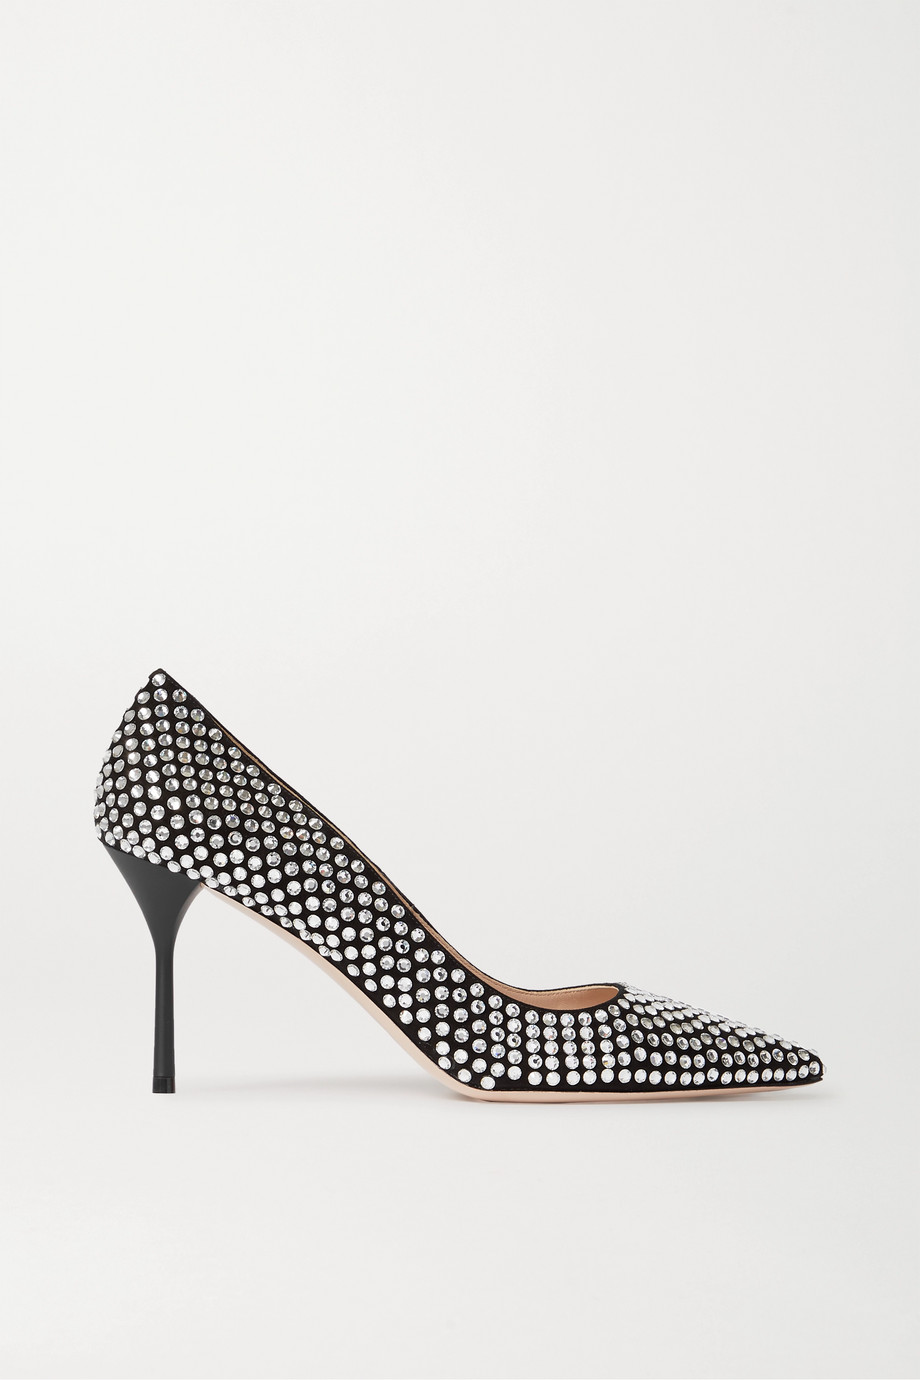 Miu Miu Crystal-embellished suede pumps